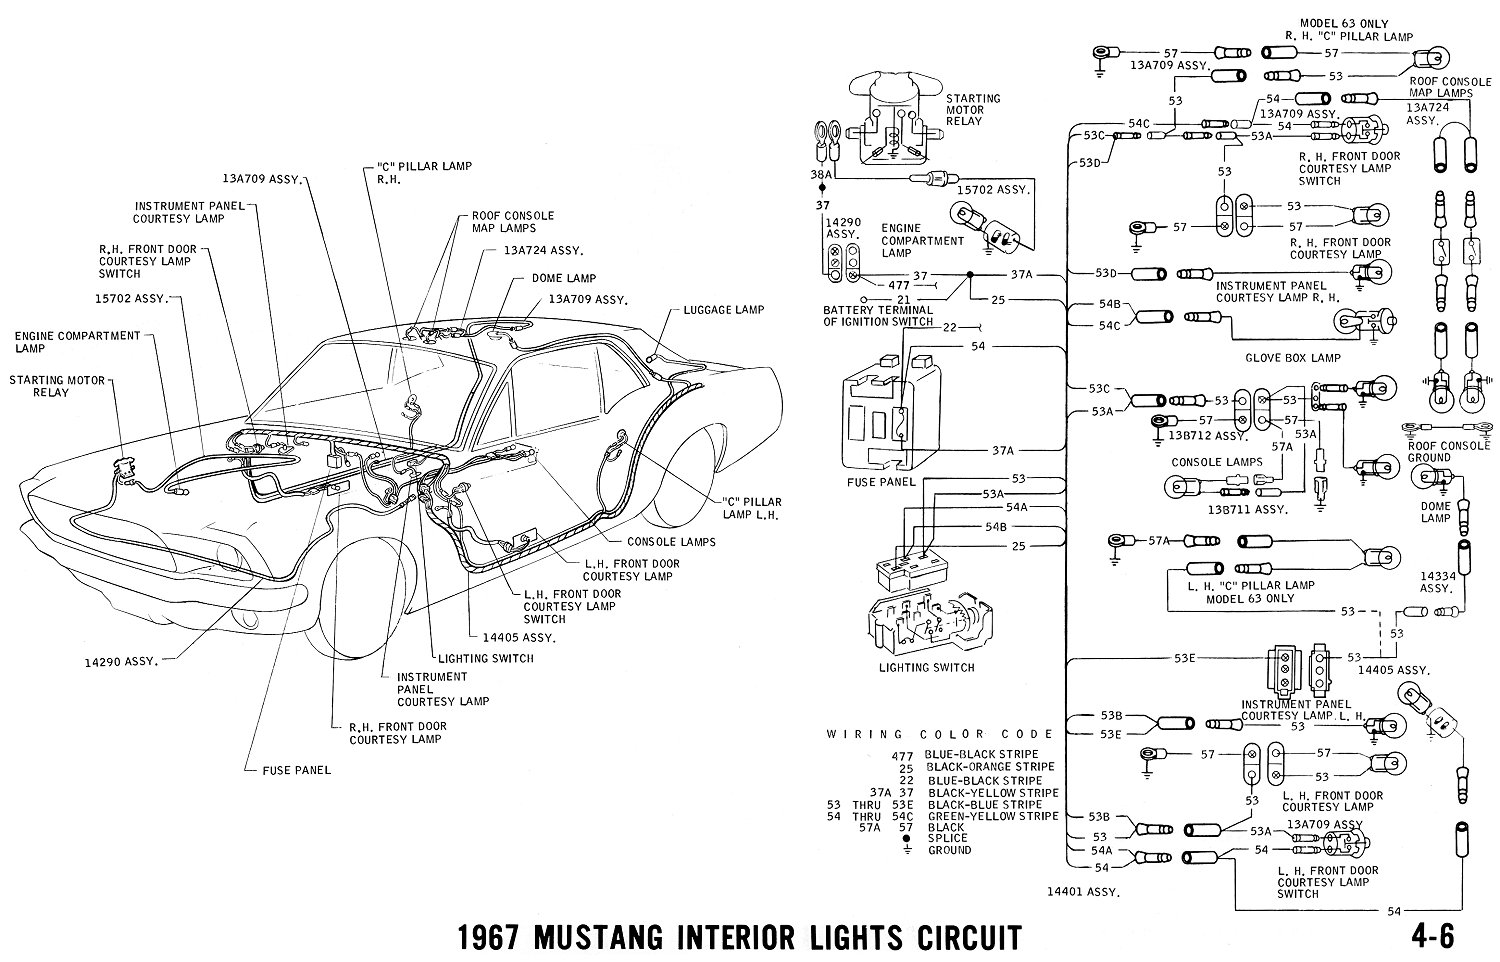 hight resolution of 1967 mustang wiring and vacuum diagrams average joe restoration 1967 mustang steering column diagram 67 mustang wiring diagram